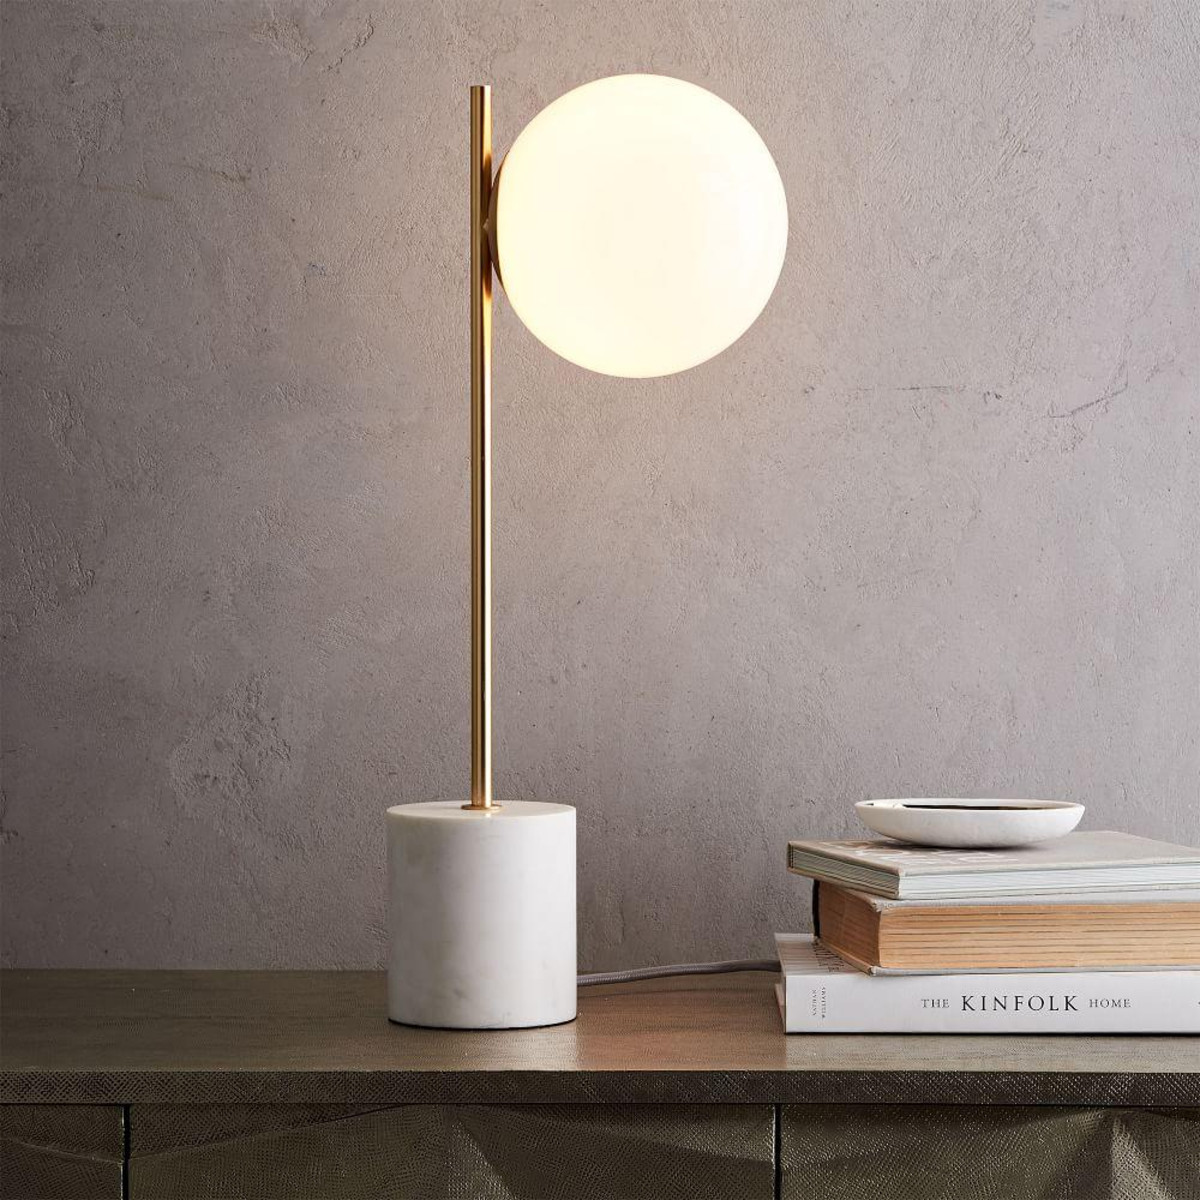 sphere stem table lamp west elm media accent spotlight diy crate end small retro side spring home decor bedroom lamps with usb ports round metal outdoor coffee pendant yuma